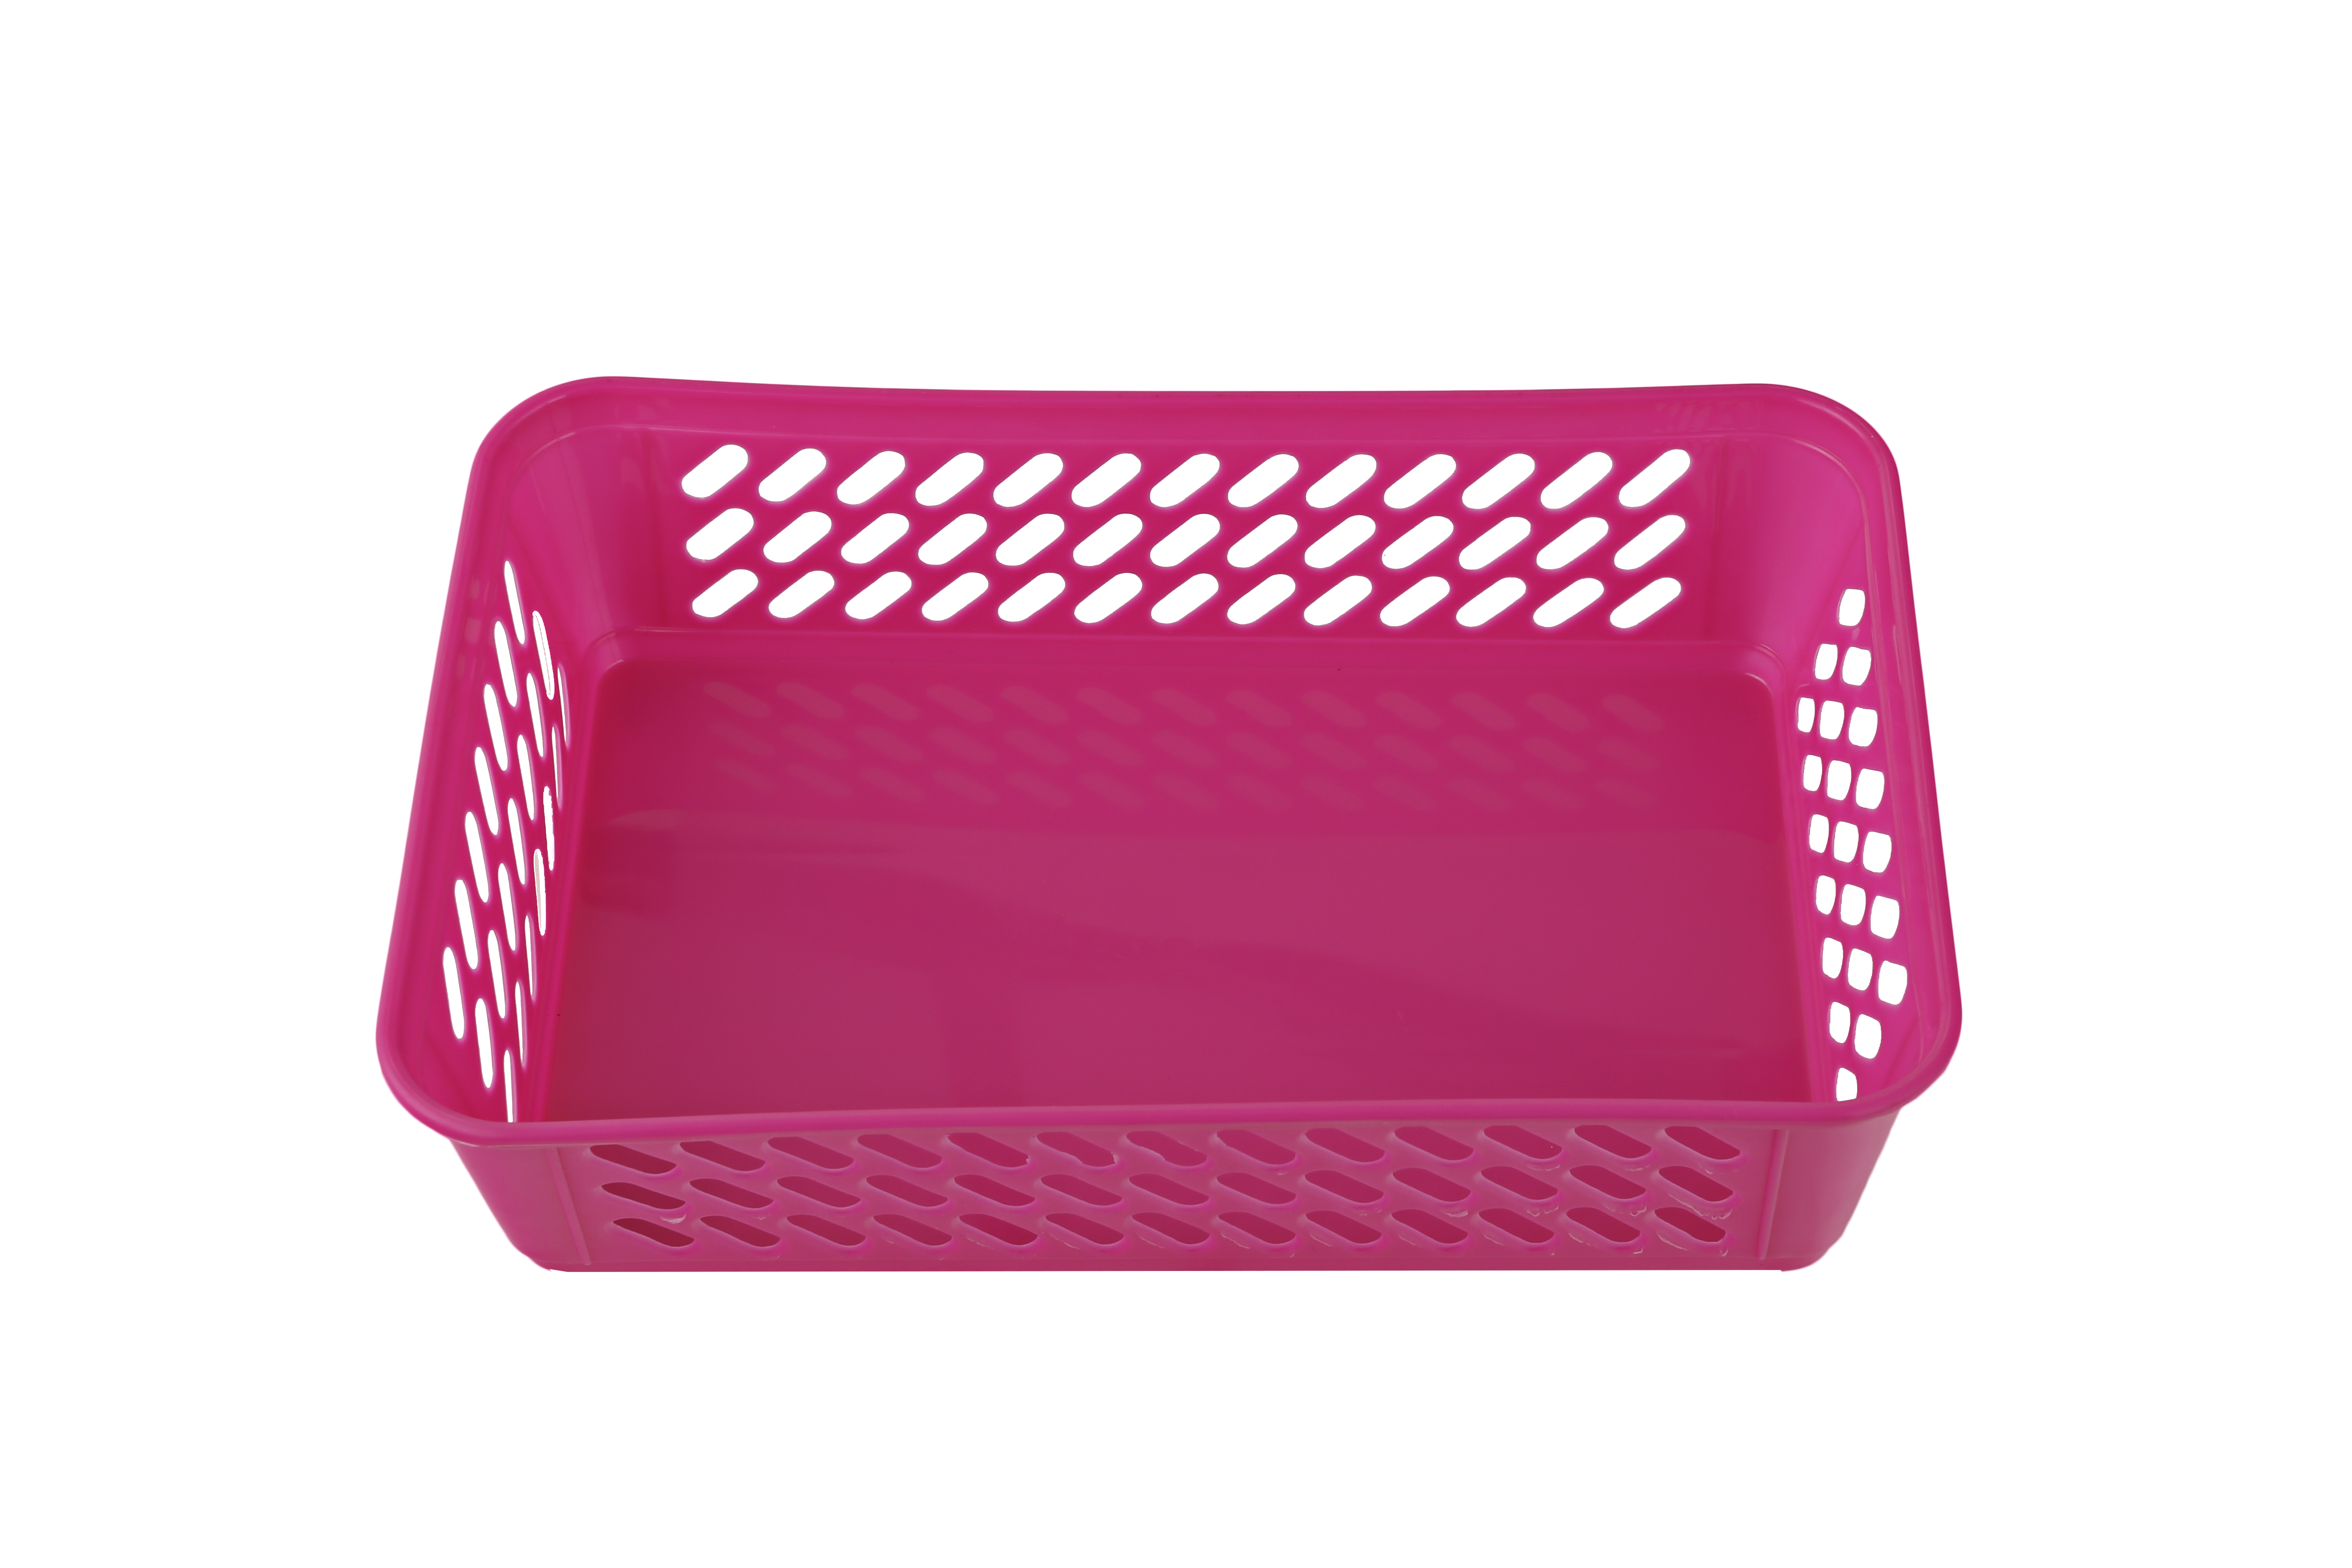 Sieve Multi Purpose Basket Pink Plastic Kitchen Storage in Pink Colour by Living Essence